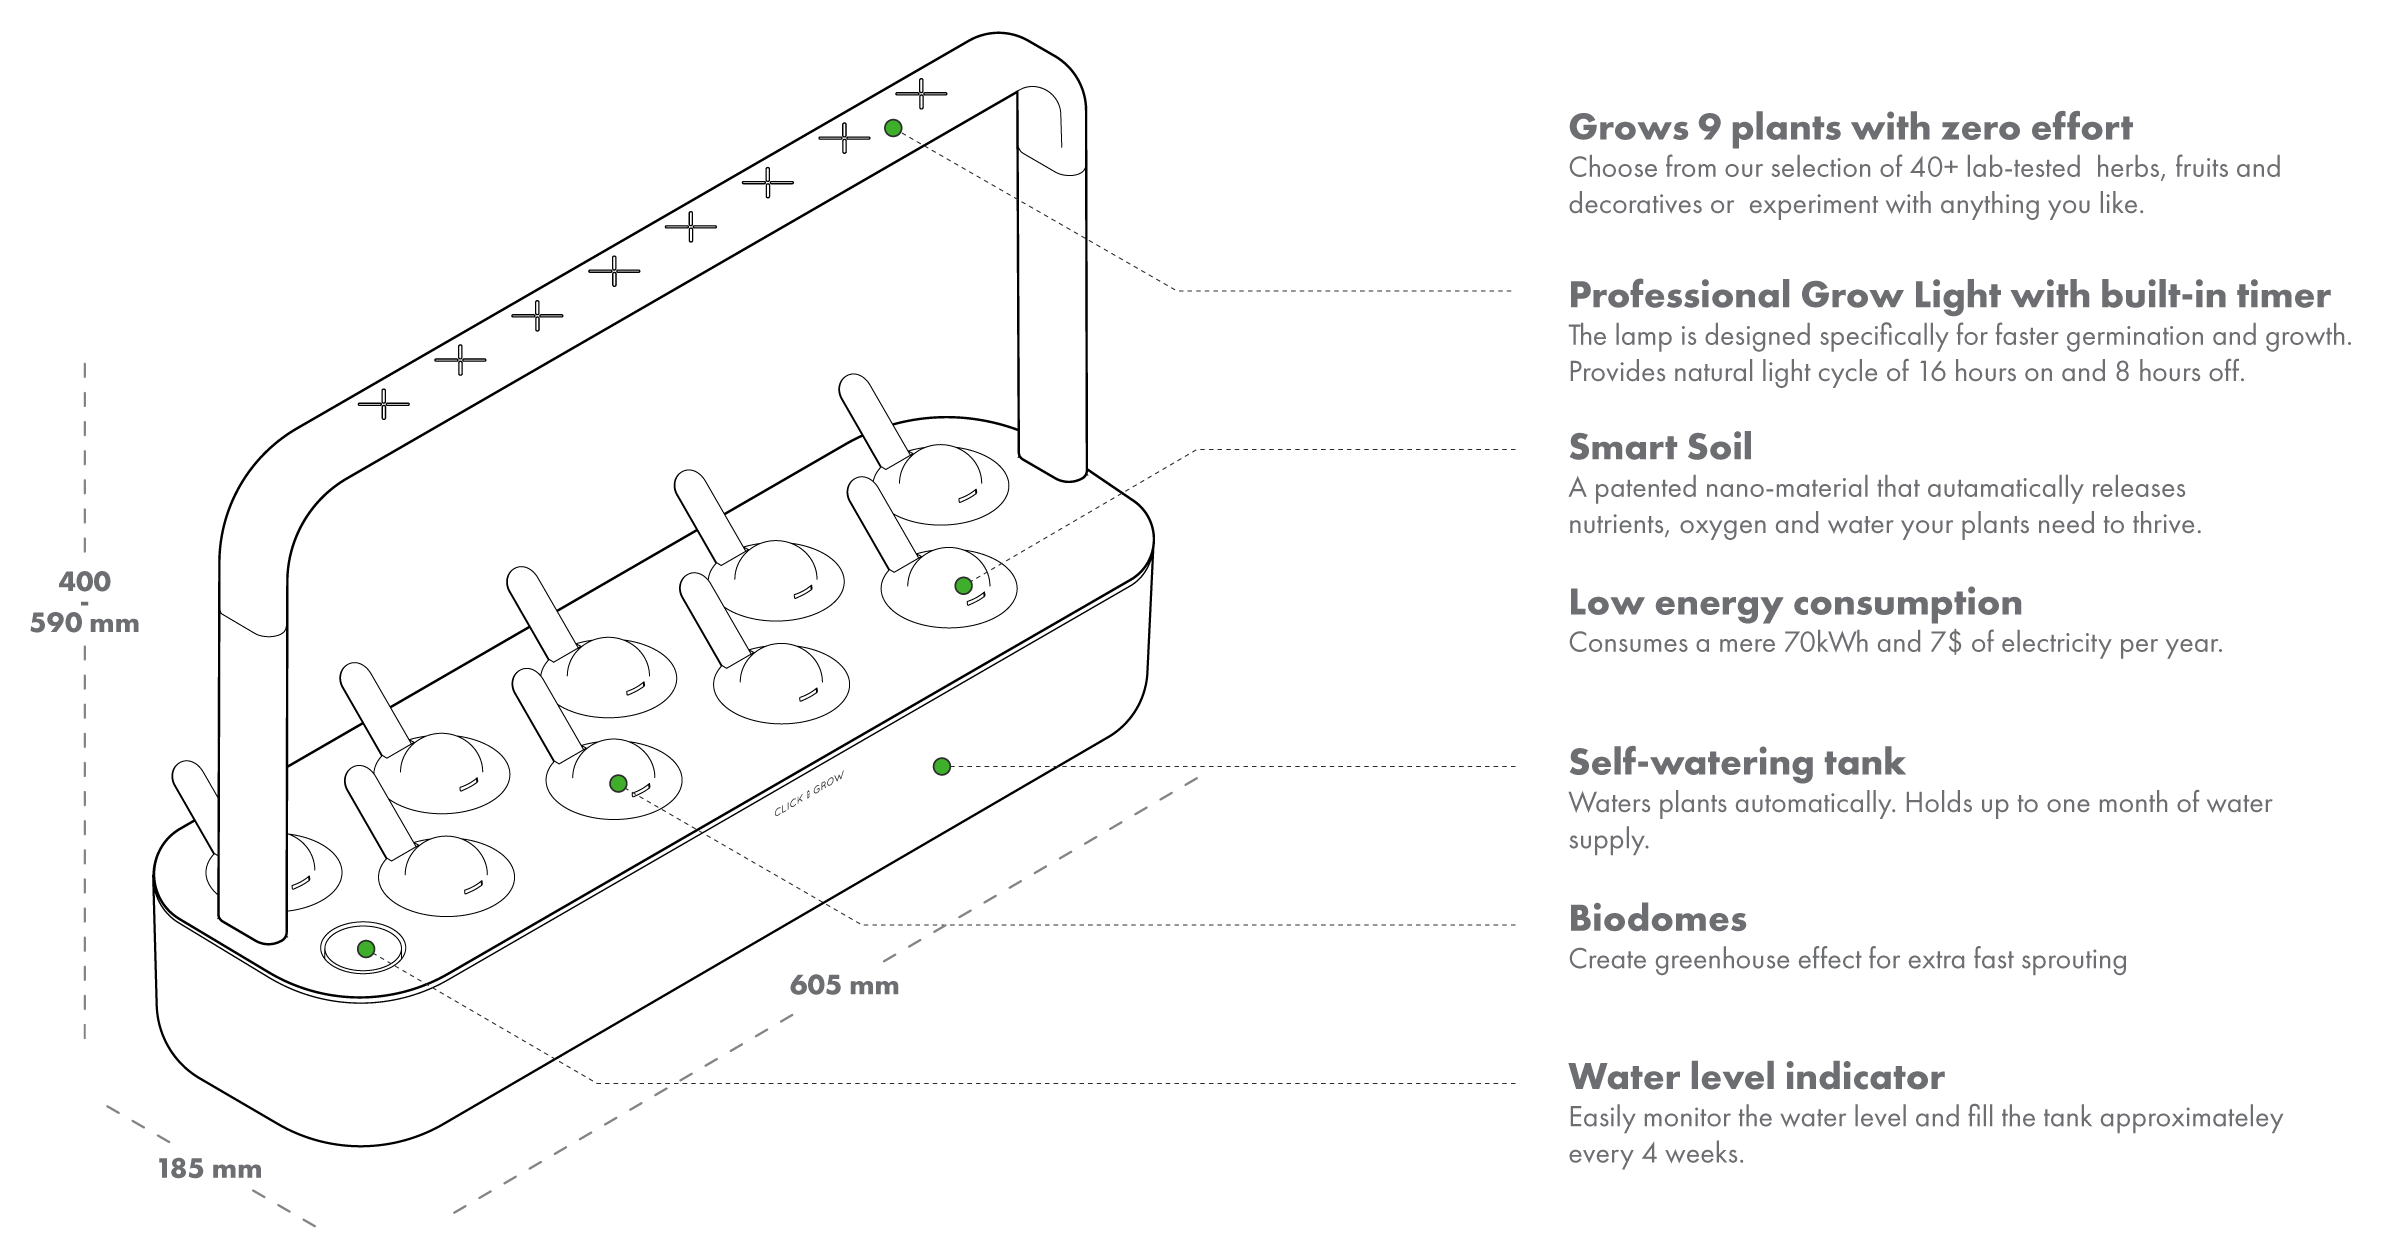 Schematic showing Smart Garden 9 features